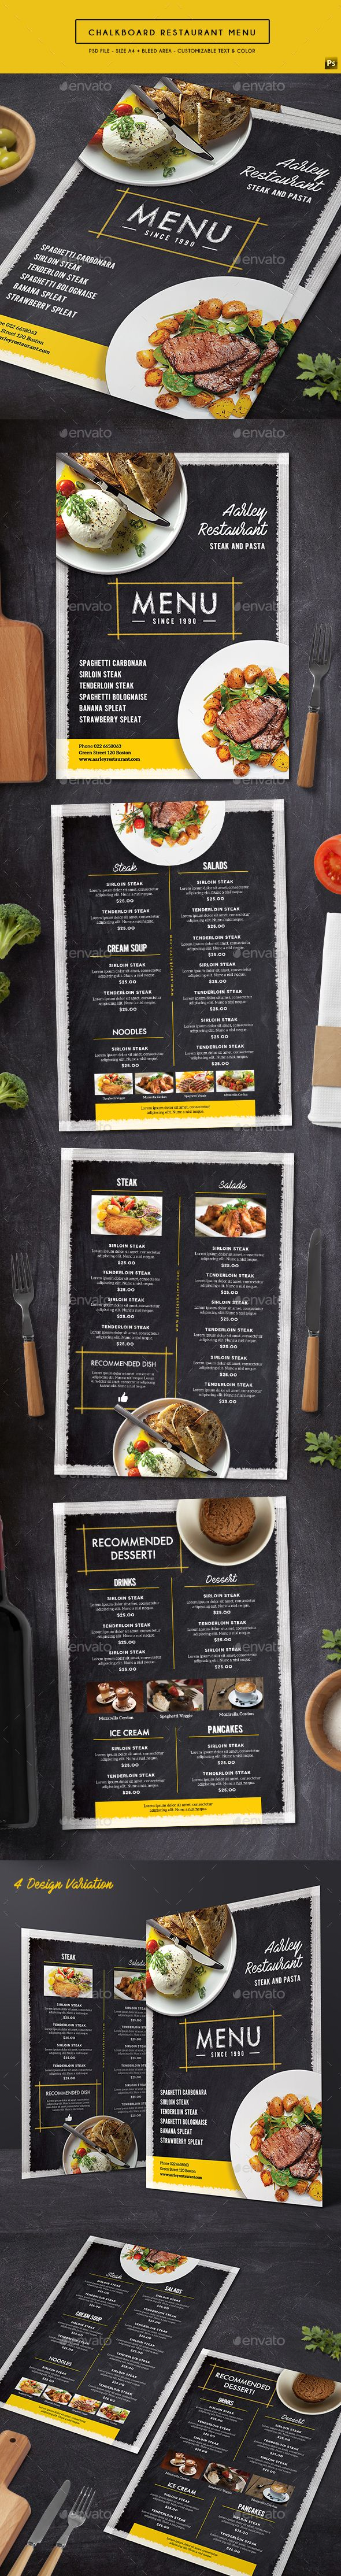 Chalkboard Restaurant Menu — Photoshop PSD #retro #style • Download ➝ https://graphicriver.net/item/chalkboard-restaurant-menu/19360869?ref=pxcr